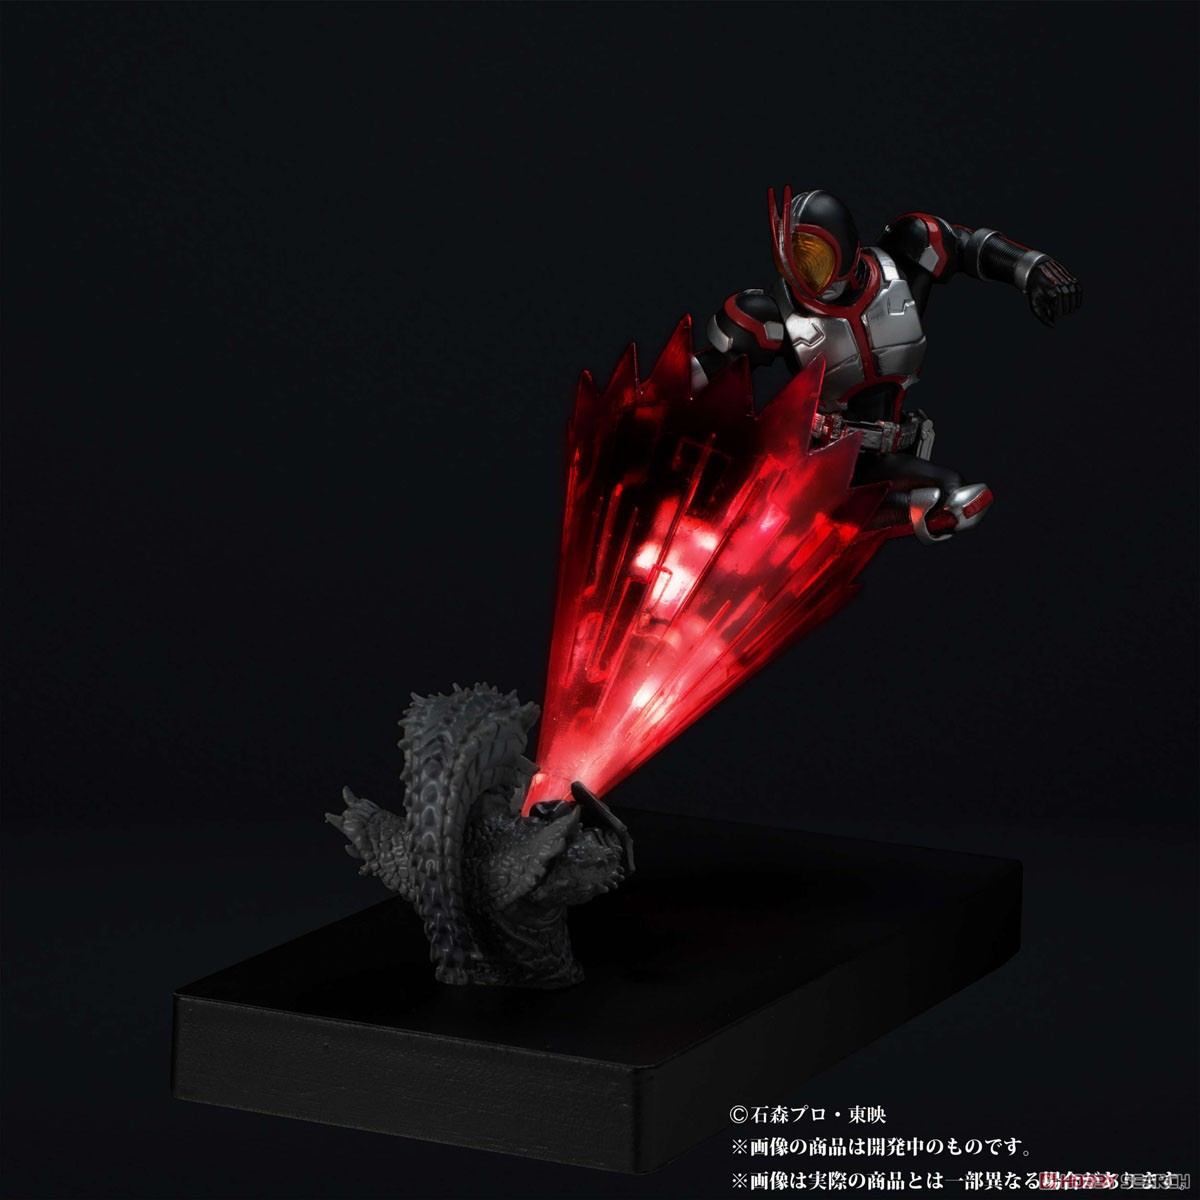 Glow In The Dark『仮面ライダーファイズ』仮面ライダー555 完成品フィギュア-002